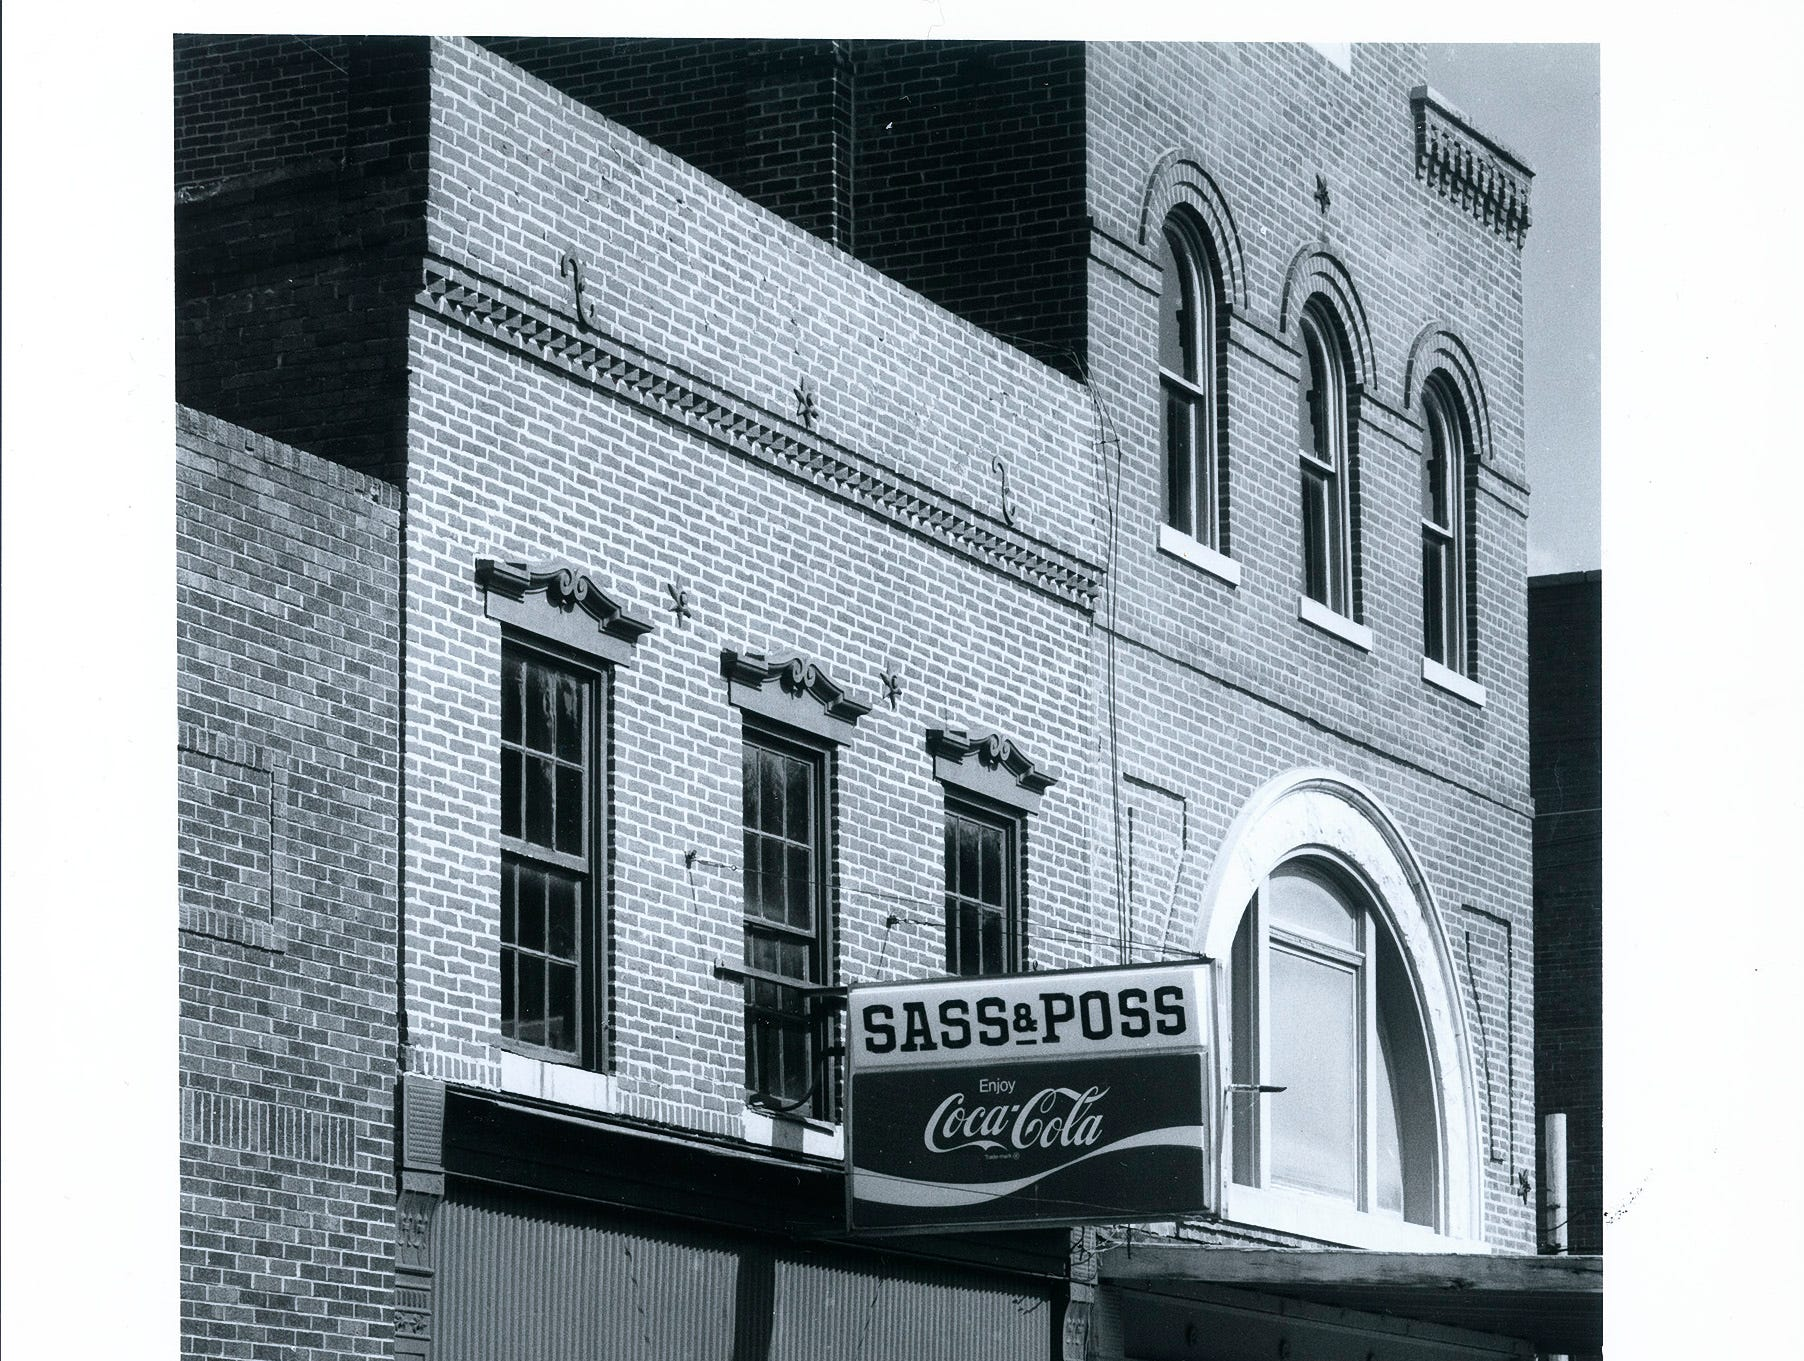 The Sass & Poss tavern on Main Street in New Harmony.